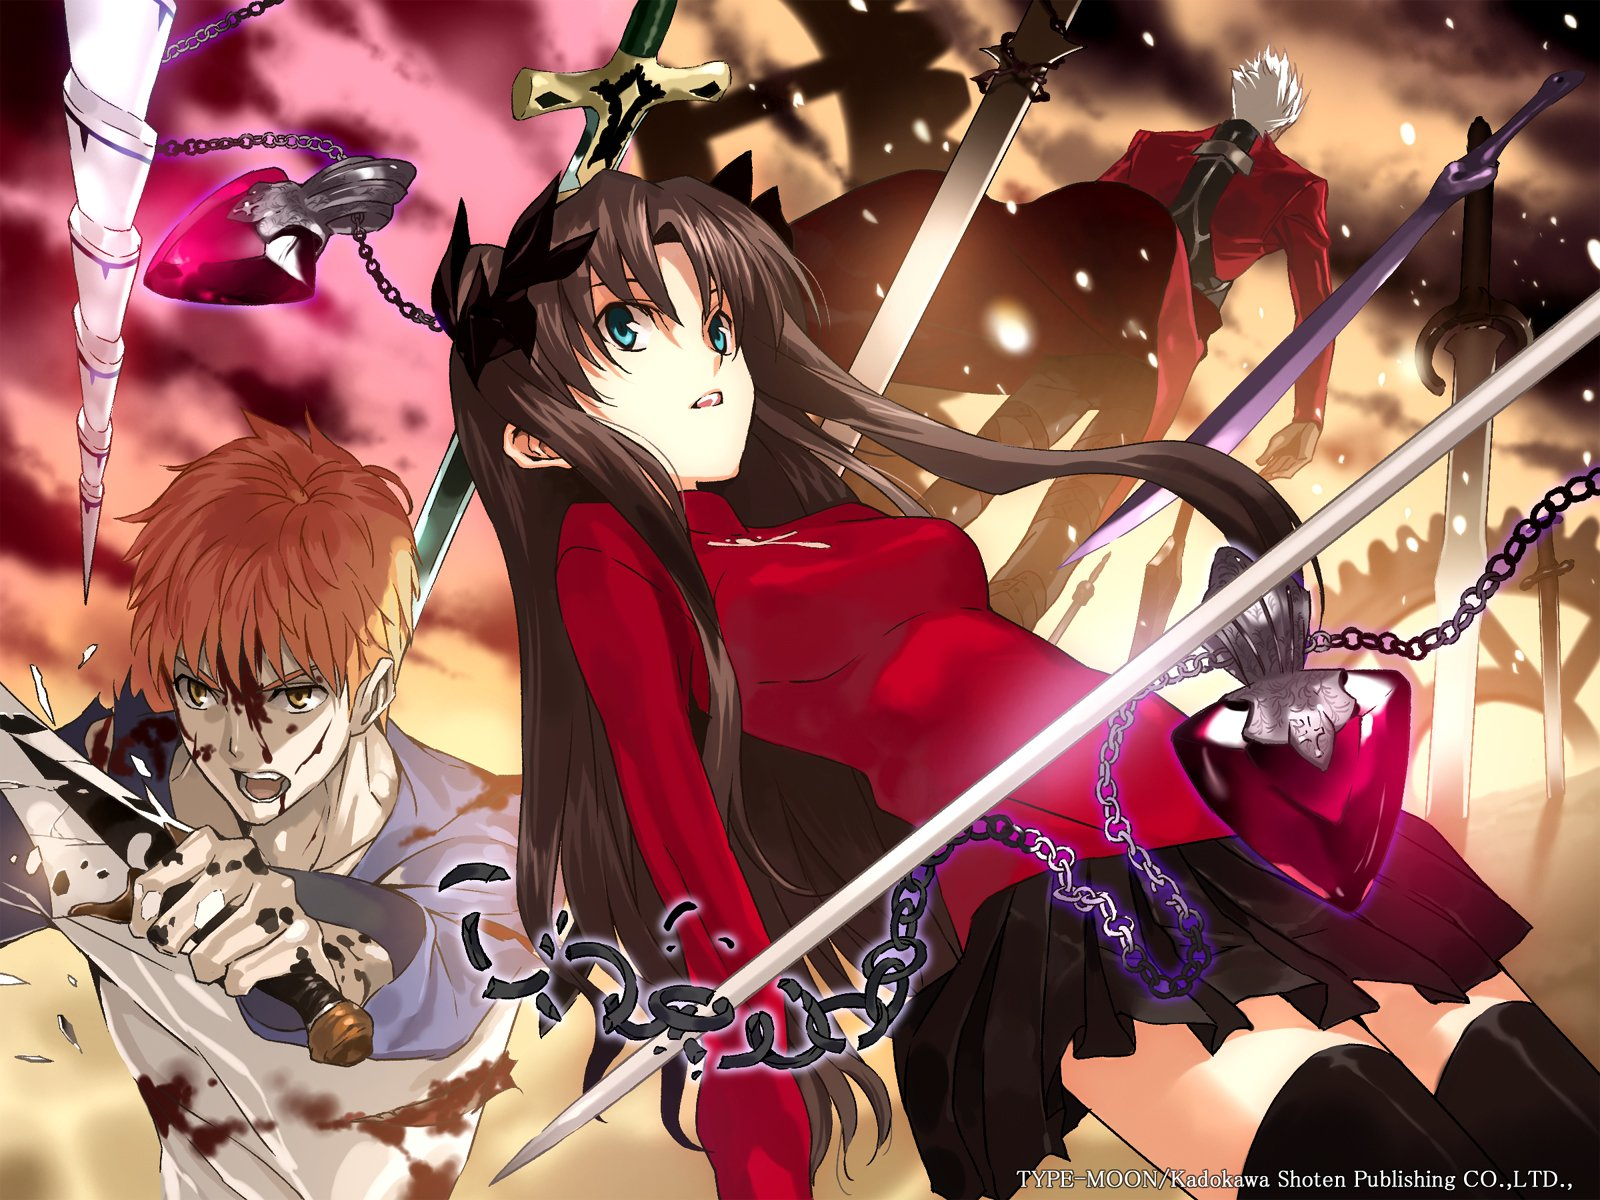 Anime - Fate/Stay Night  Rin Tohsaka Shirou Emiya Archer (Fate/Stay Night) Wallpaper